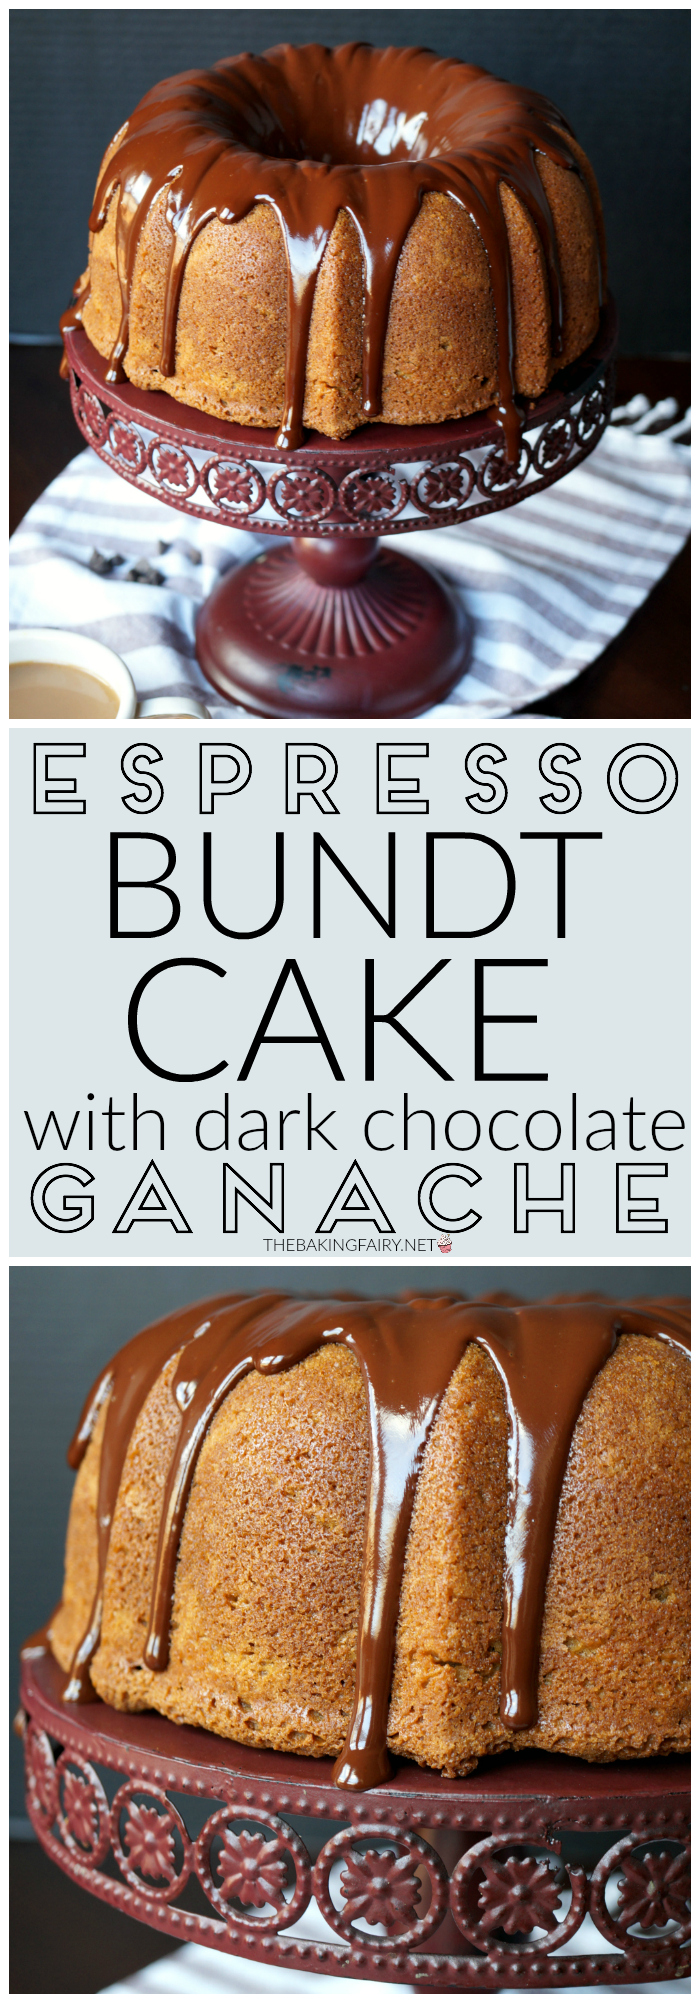 espresso bundt cake with dark chocolate ganache | The Baking Fairy